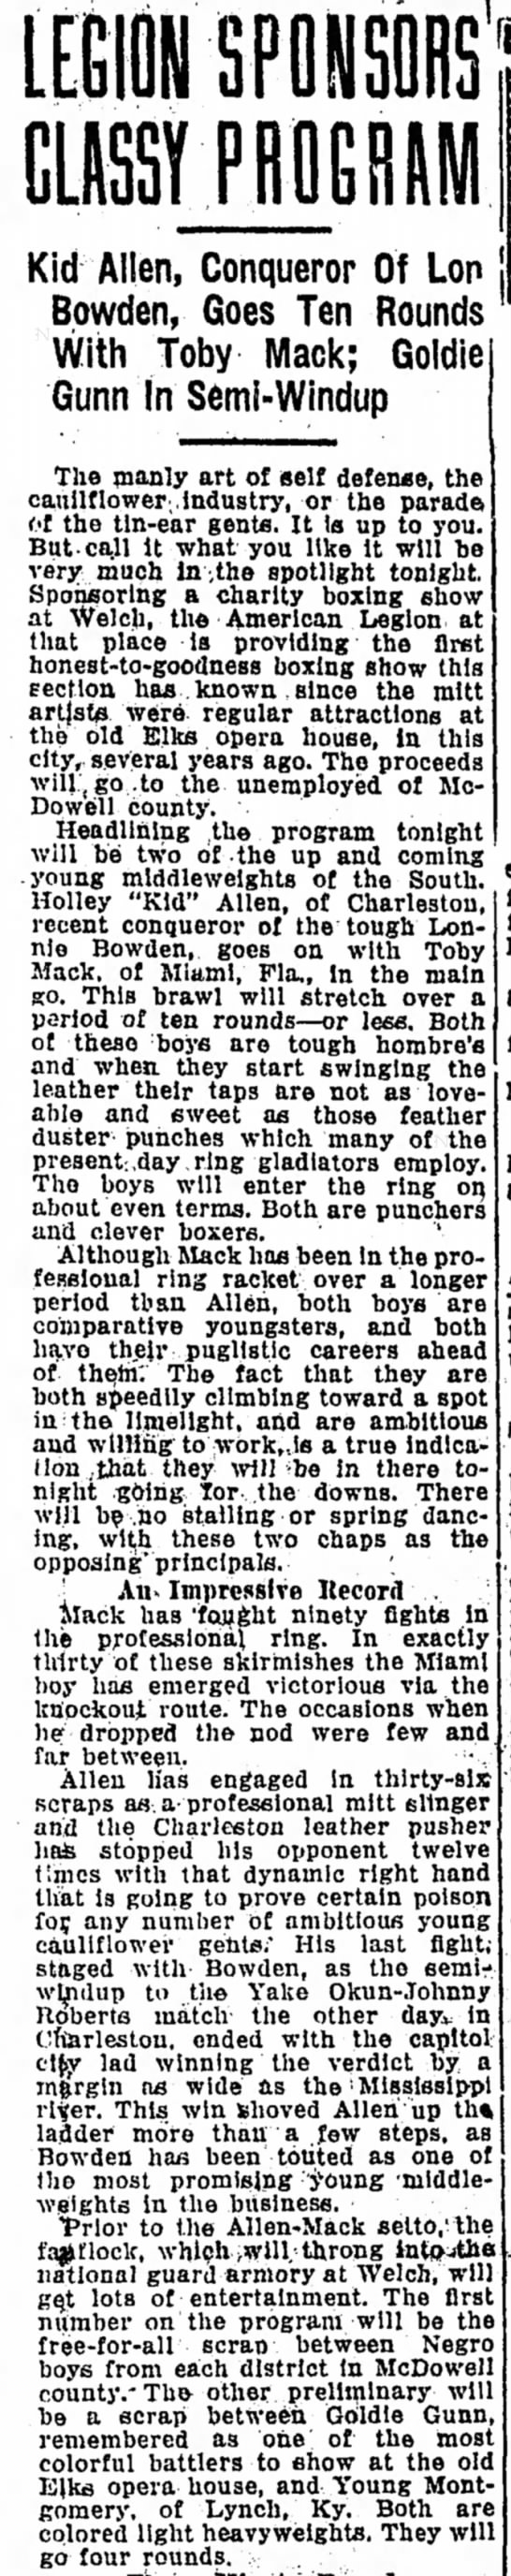 March 27, 1931 Boxing Match